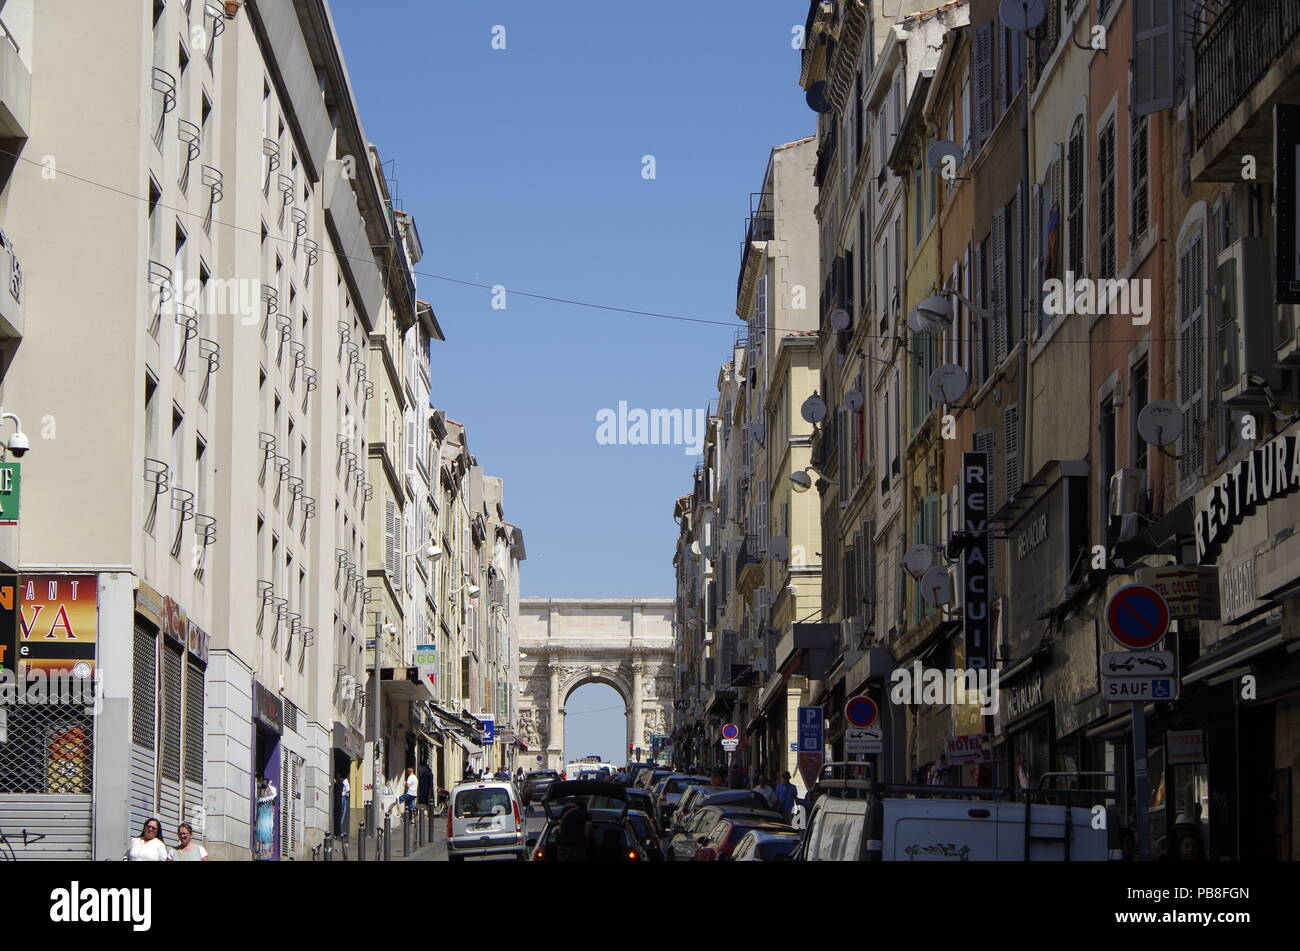 View North up Rue d'Aix to the triumphal arch, known as the Porte Royale or the Porte d'Aix, it commemorates French military victories - Stock Image